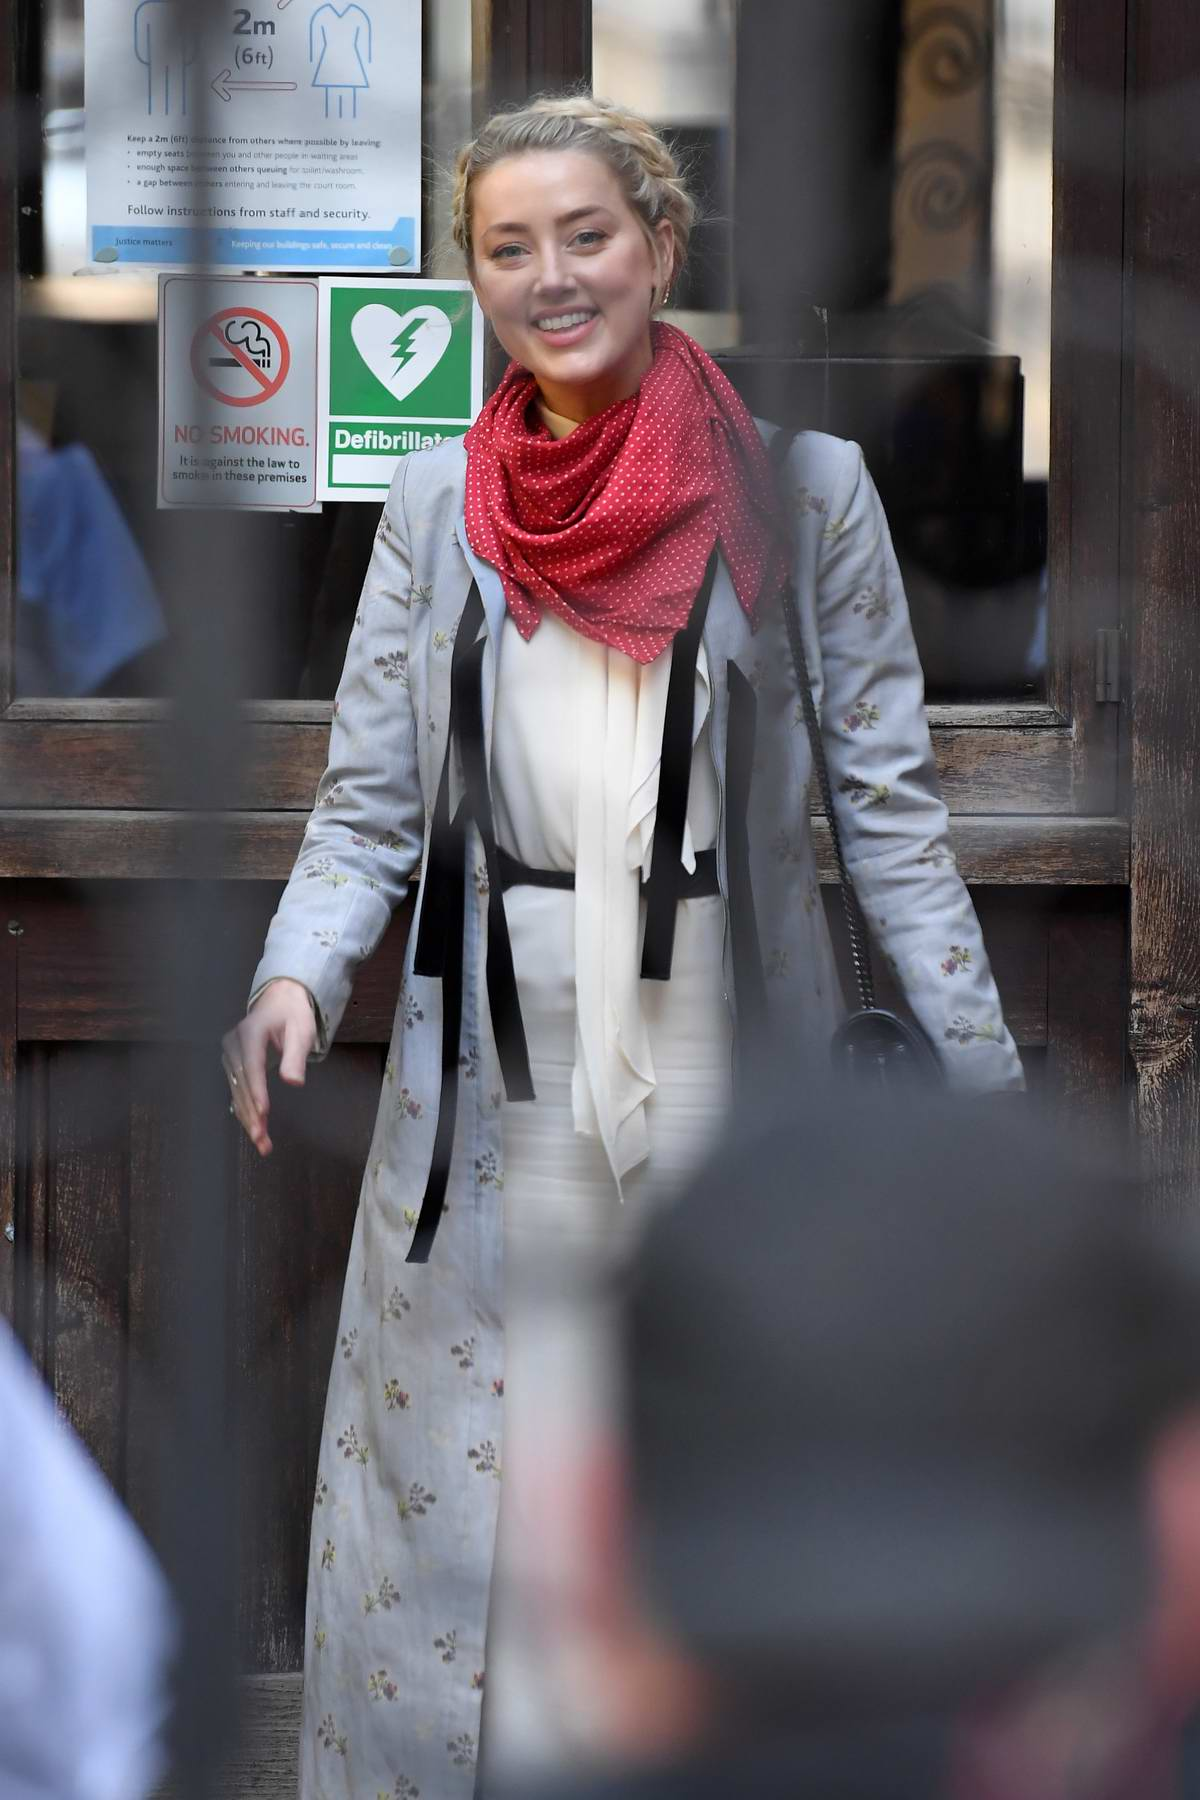 Amber Heard flashes a smile as she arrives at the Royal Courts of Justice in London, UK